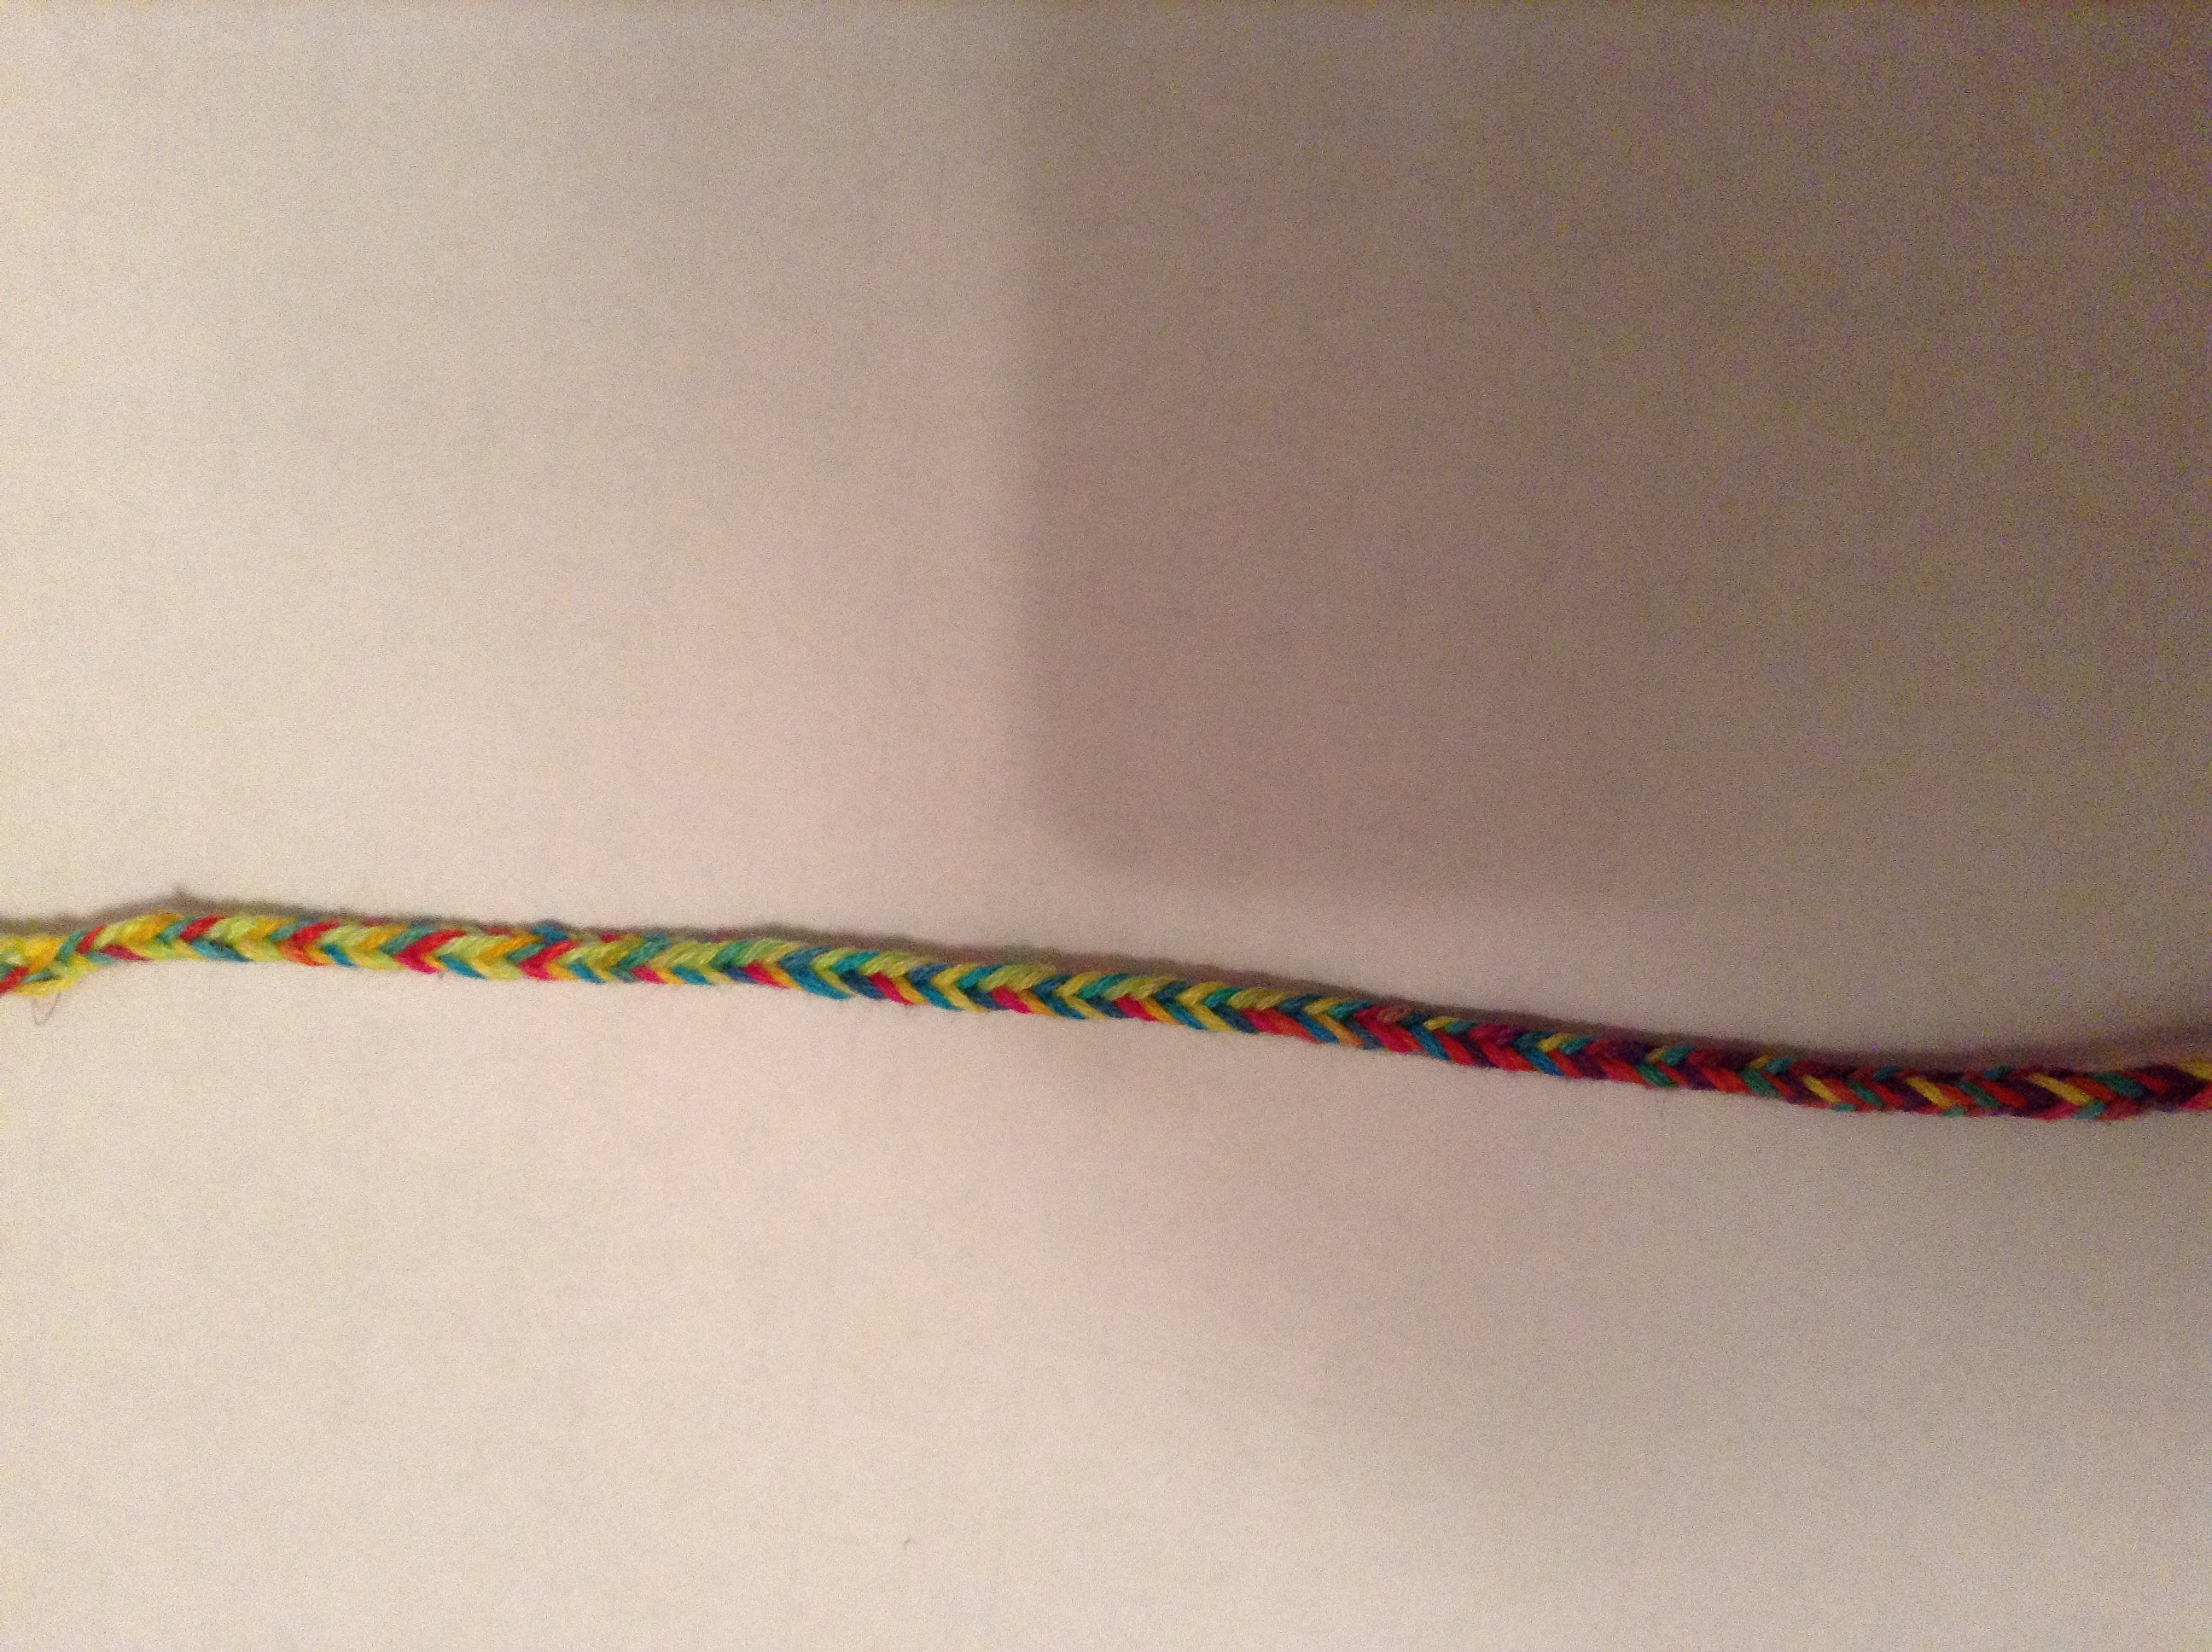 Brilliant bracelets co rainbow fade 5 string weave for How to weave a net with string